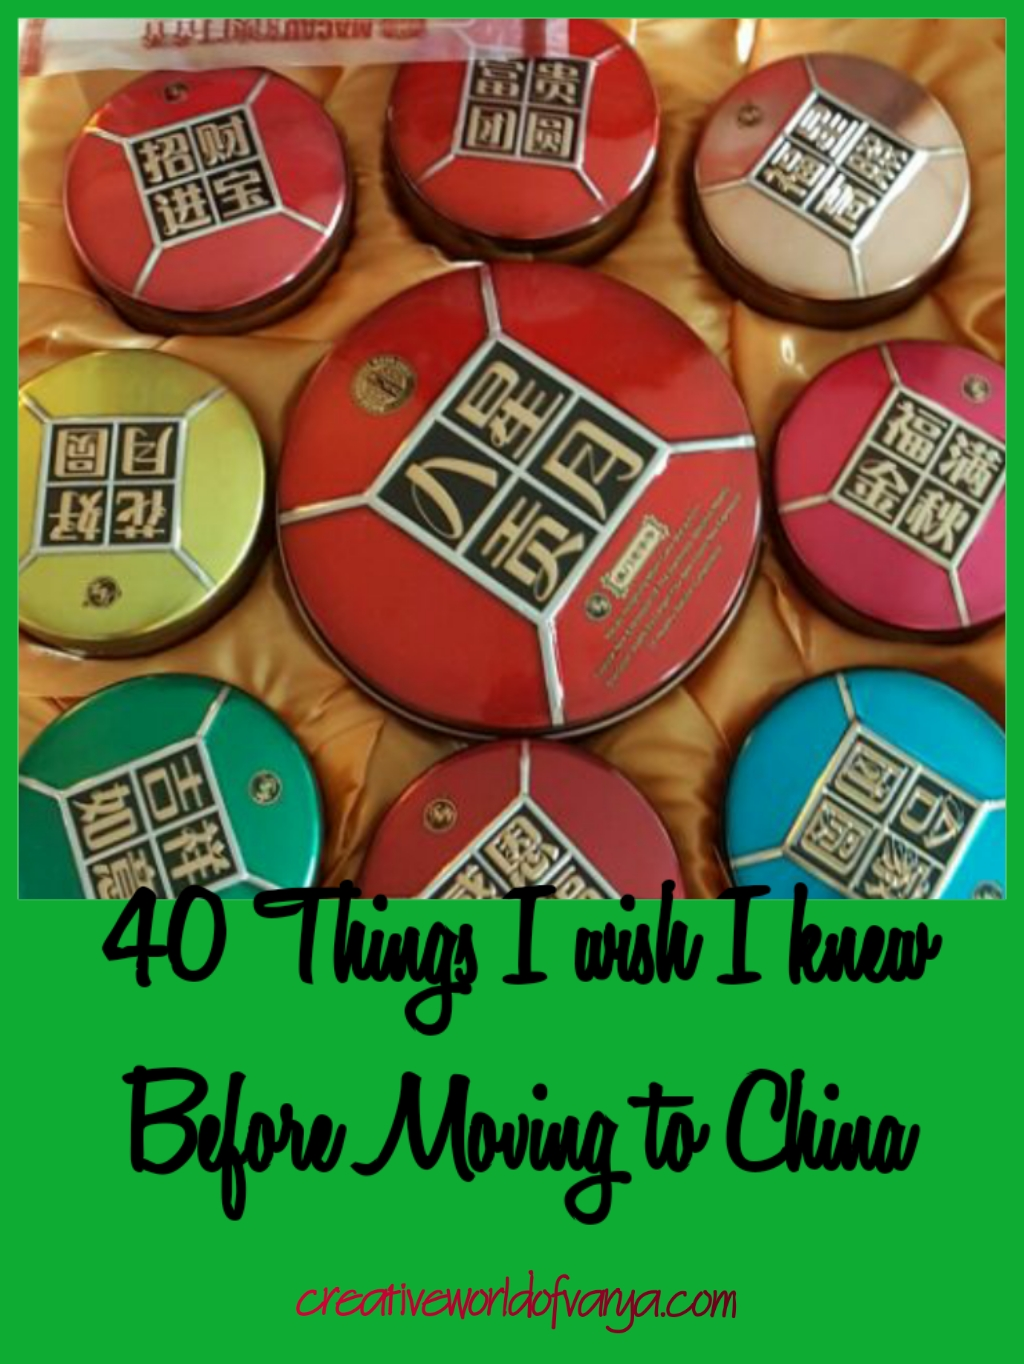 40 Things I wish I knew Before Moving to China